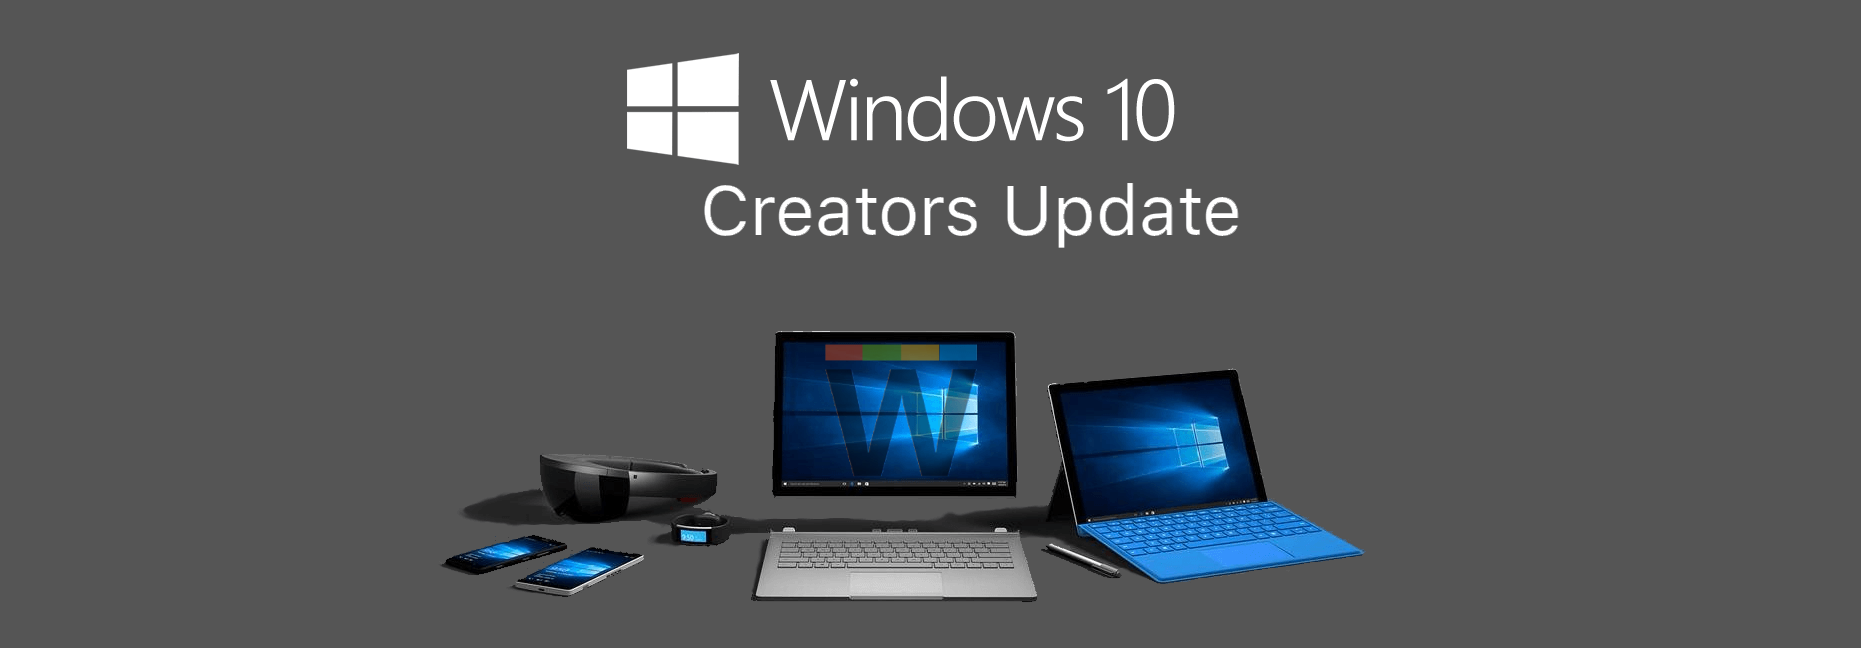 Available activation keys for Windows 10, windows 10 key purchase